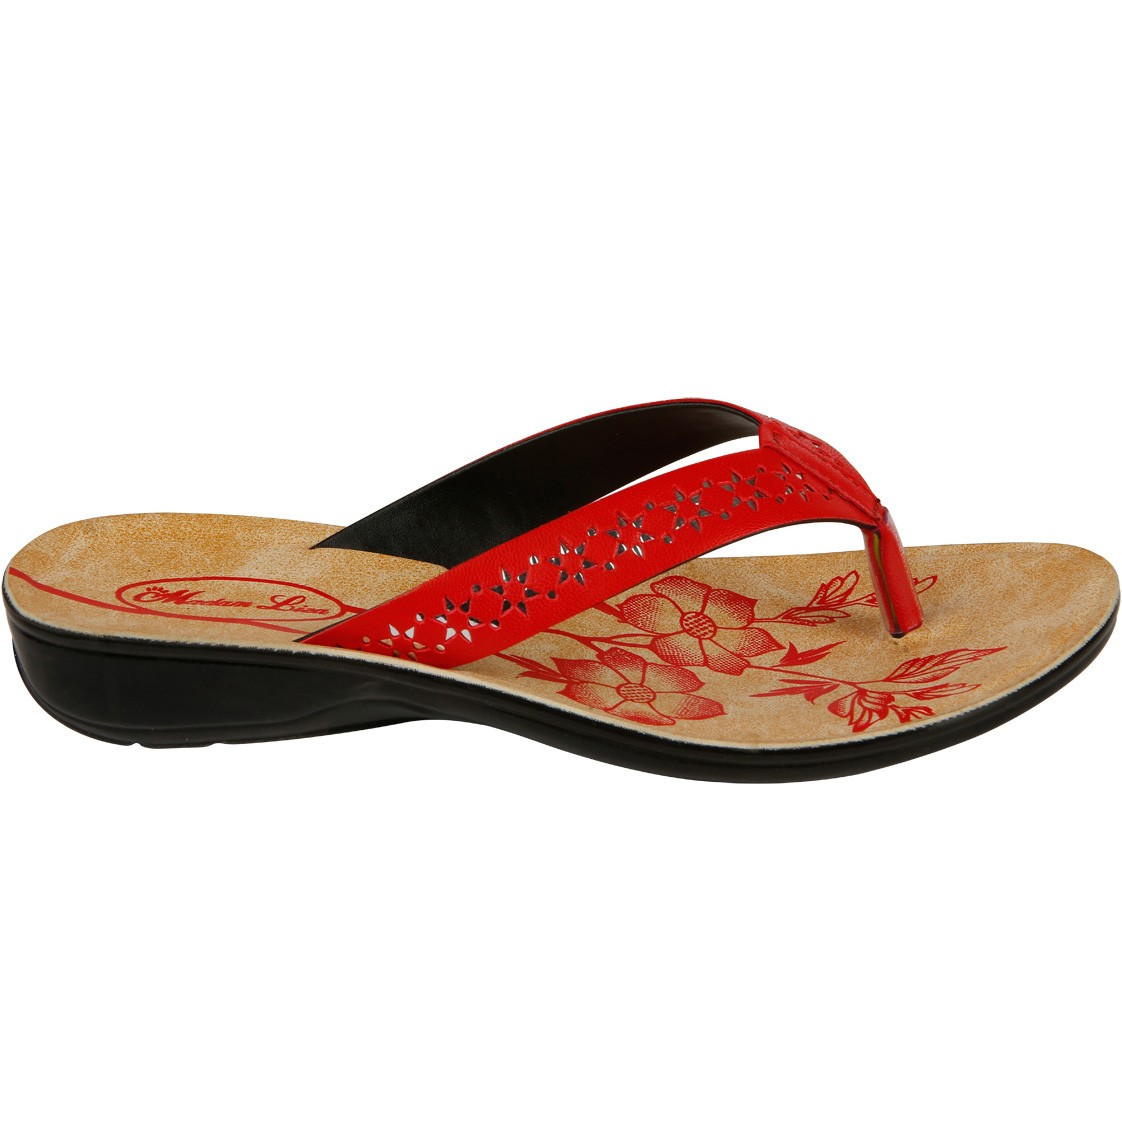 MADAM LIZA PU ART 512 RED